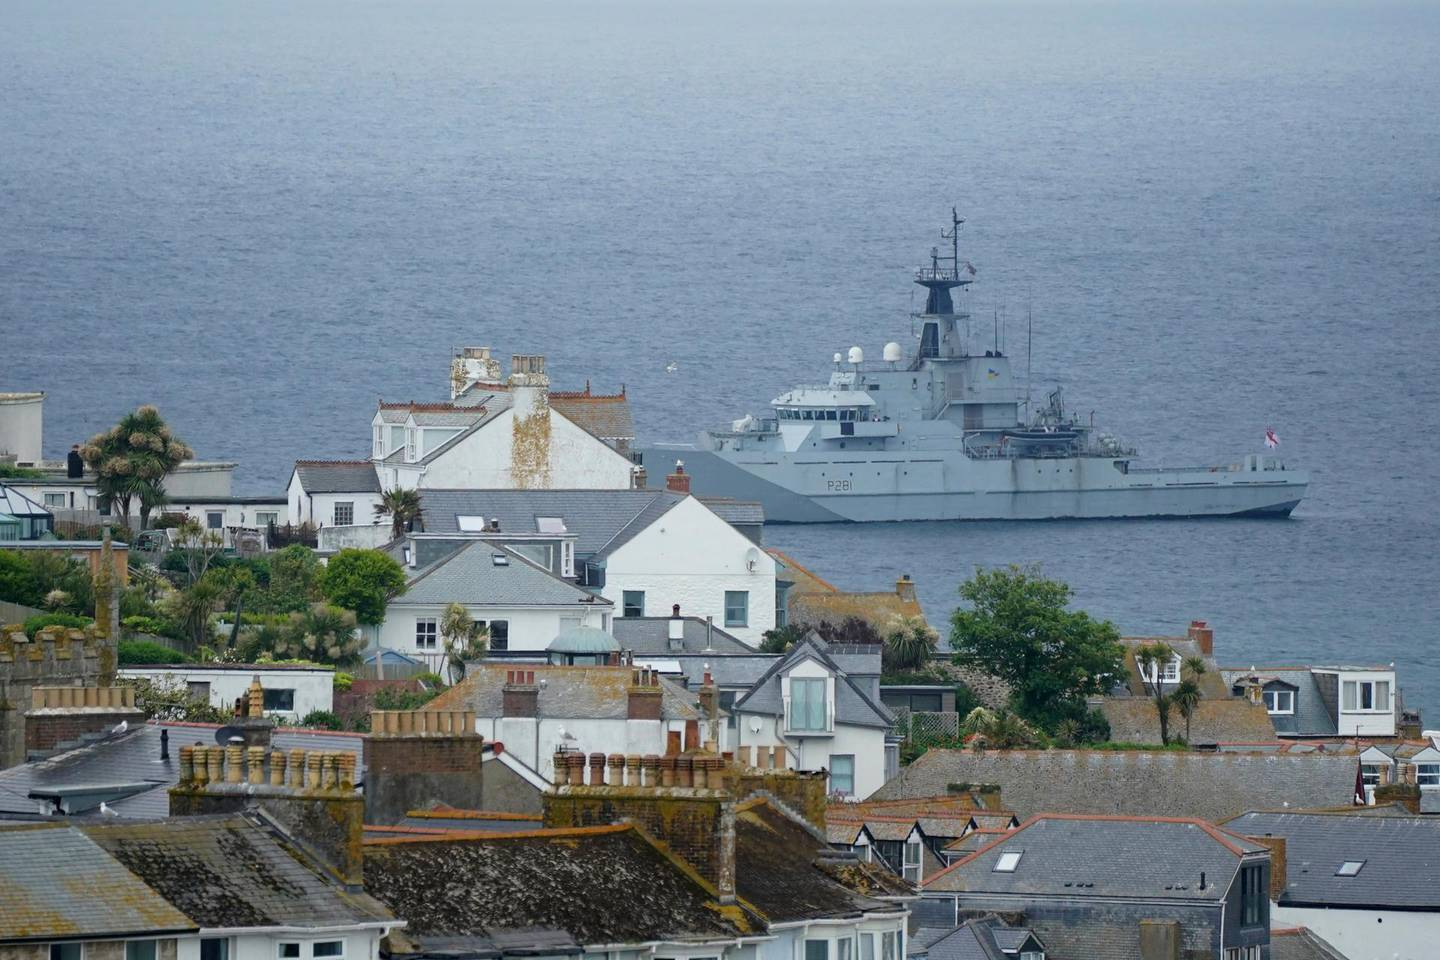 The British Royal Navy patrols Carbis Bay in St. Ives, Cornwall, England, Thursday, June 10, 2021. Security in the area is being tightened ahead of the upcoming G7 meeting taking place in Carbis Bay. G7 leaders and guests will meet in the the Cornish resort starting Friday, June 11, 2021. (AP Photo/Jon Super)